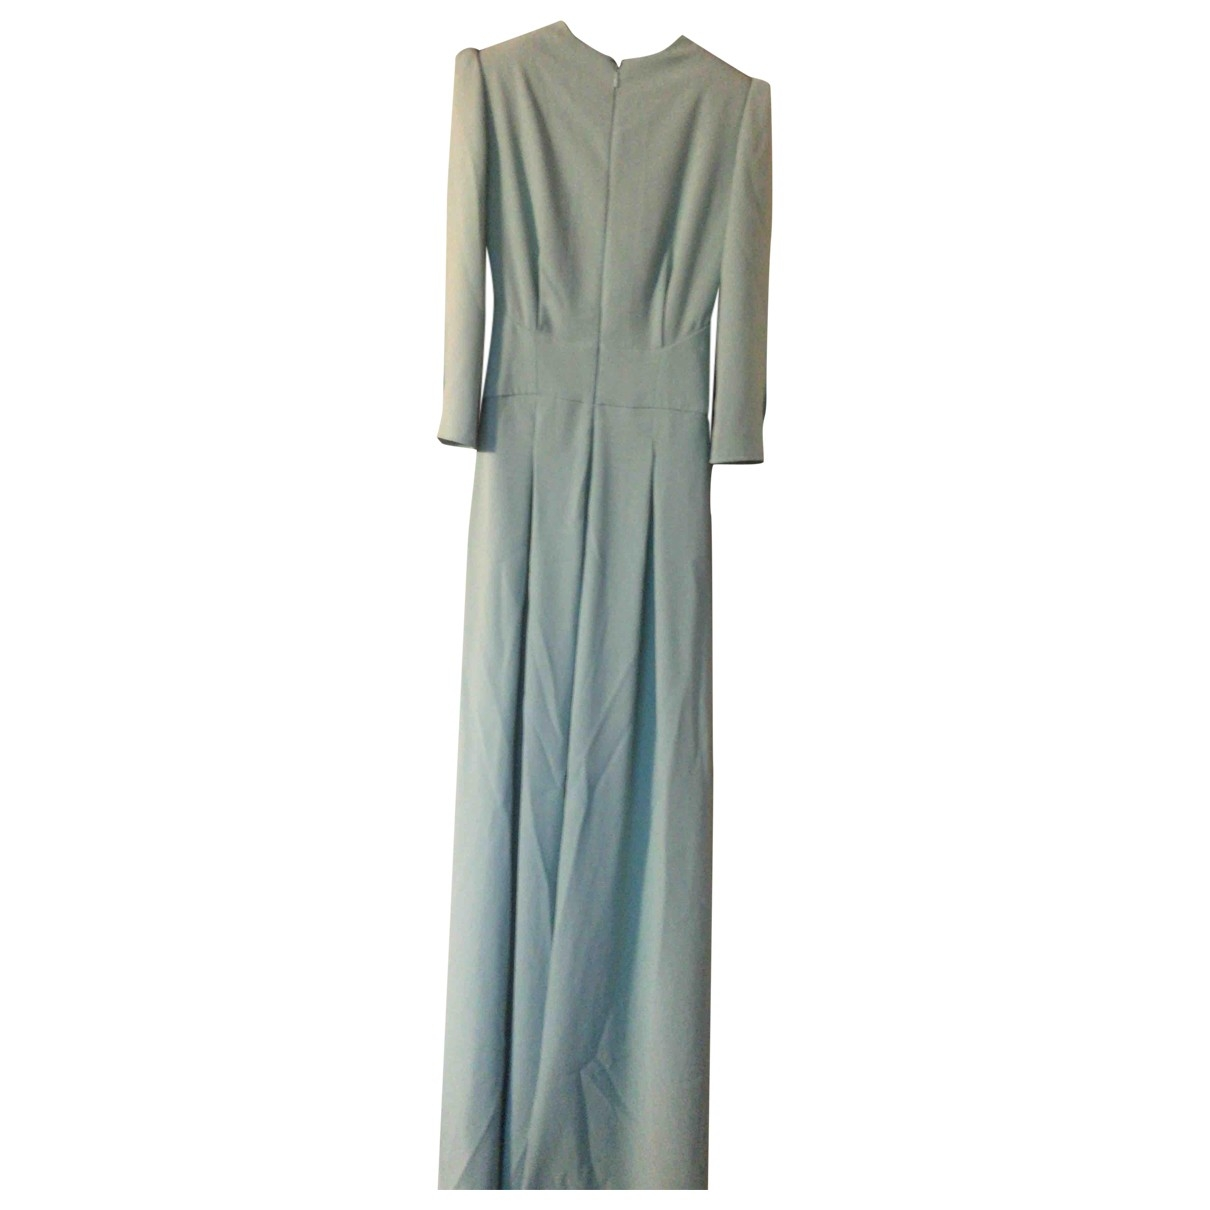 Elisabetta Franchi \N dress for Women 40 IT